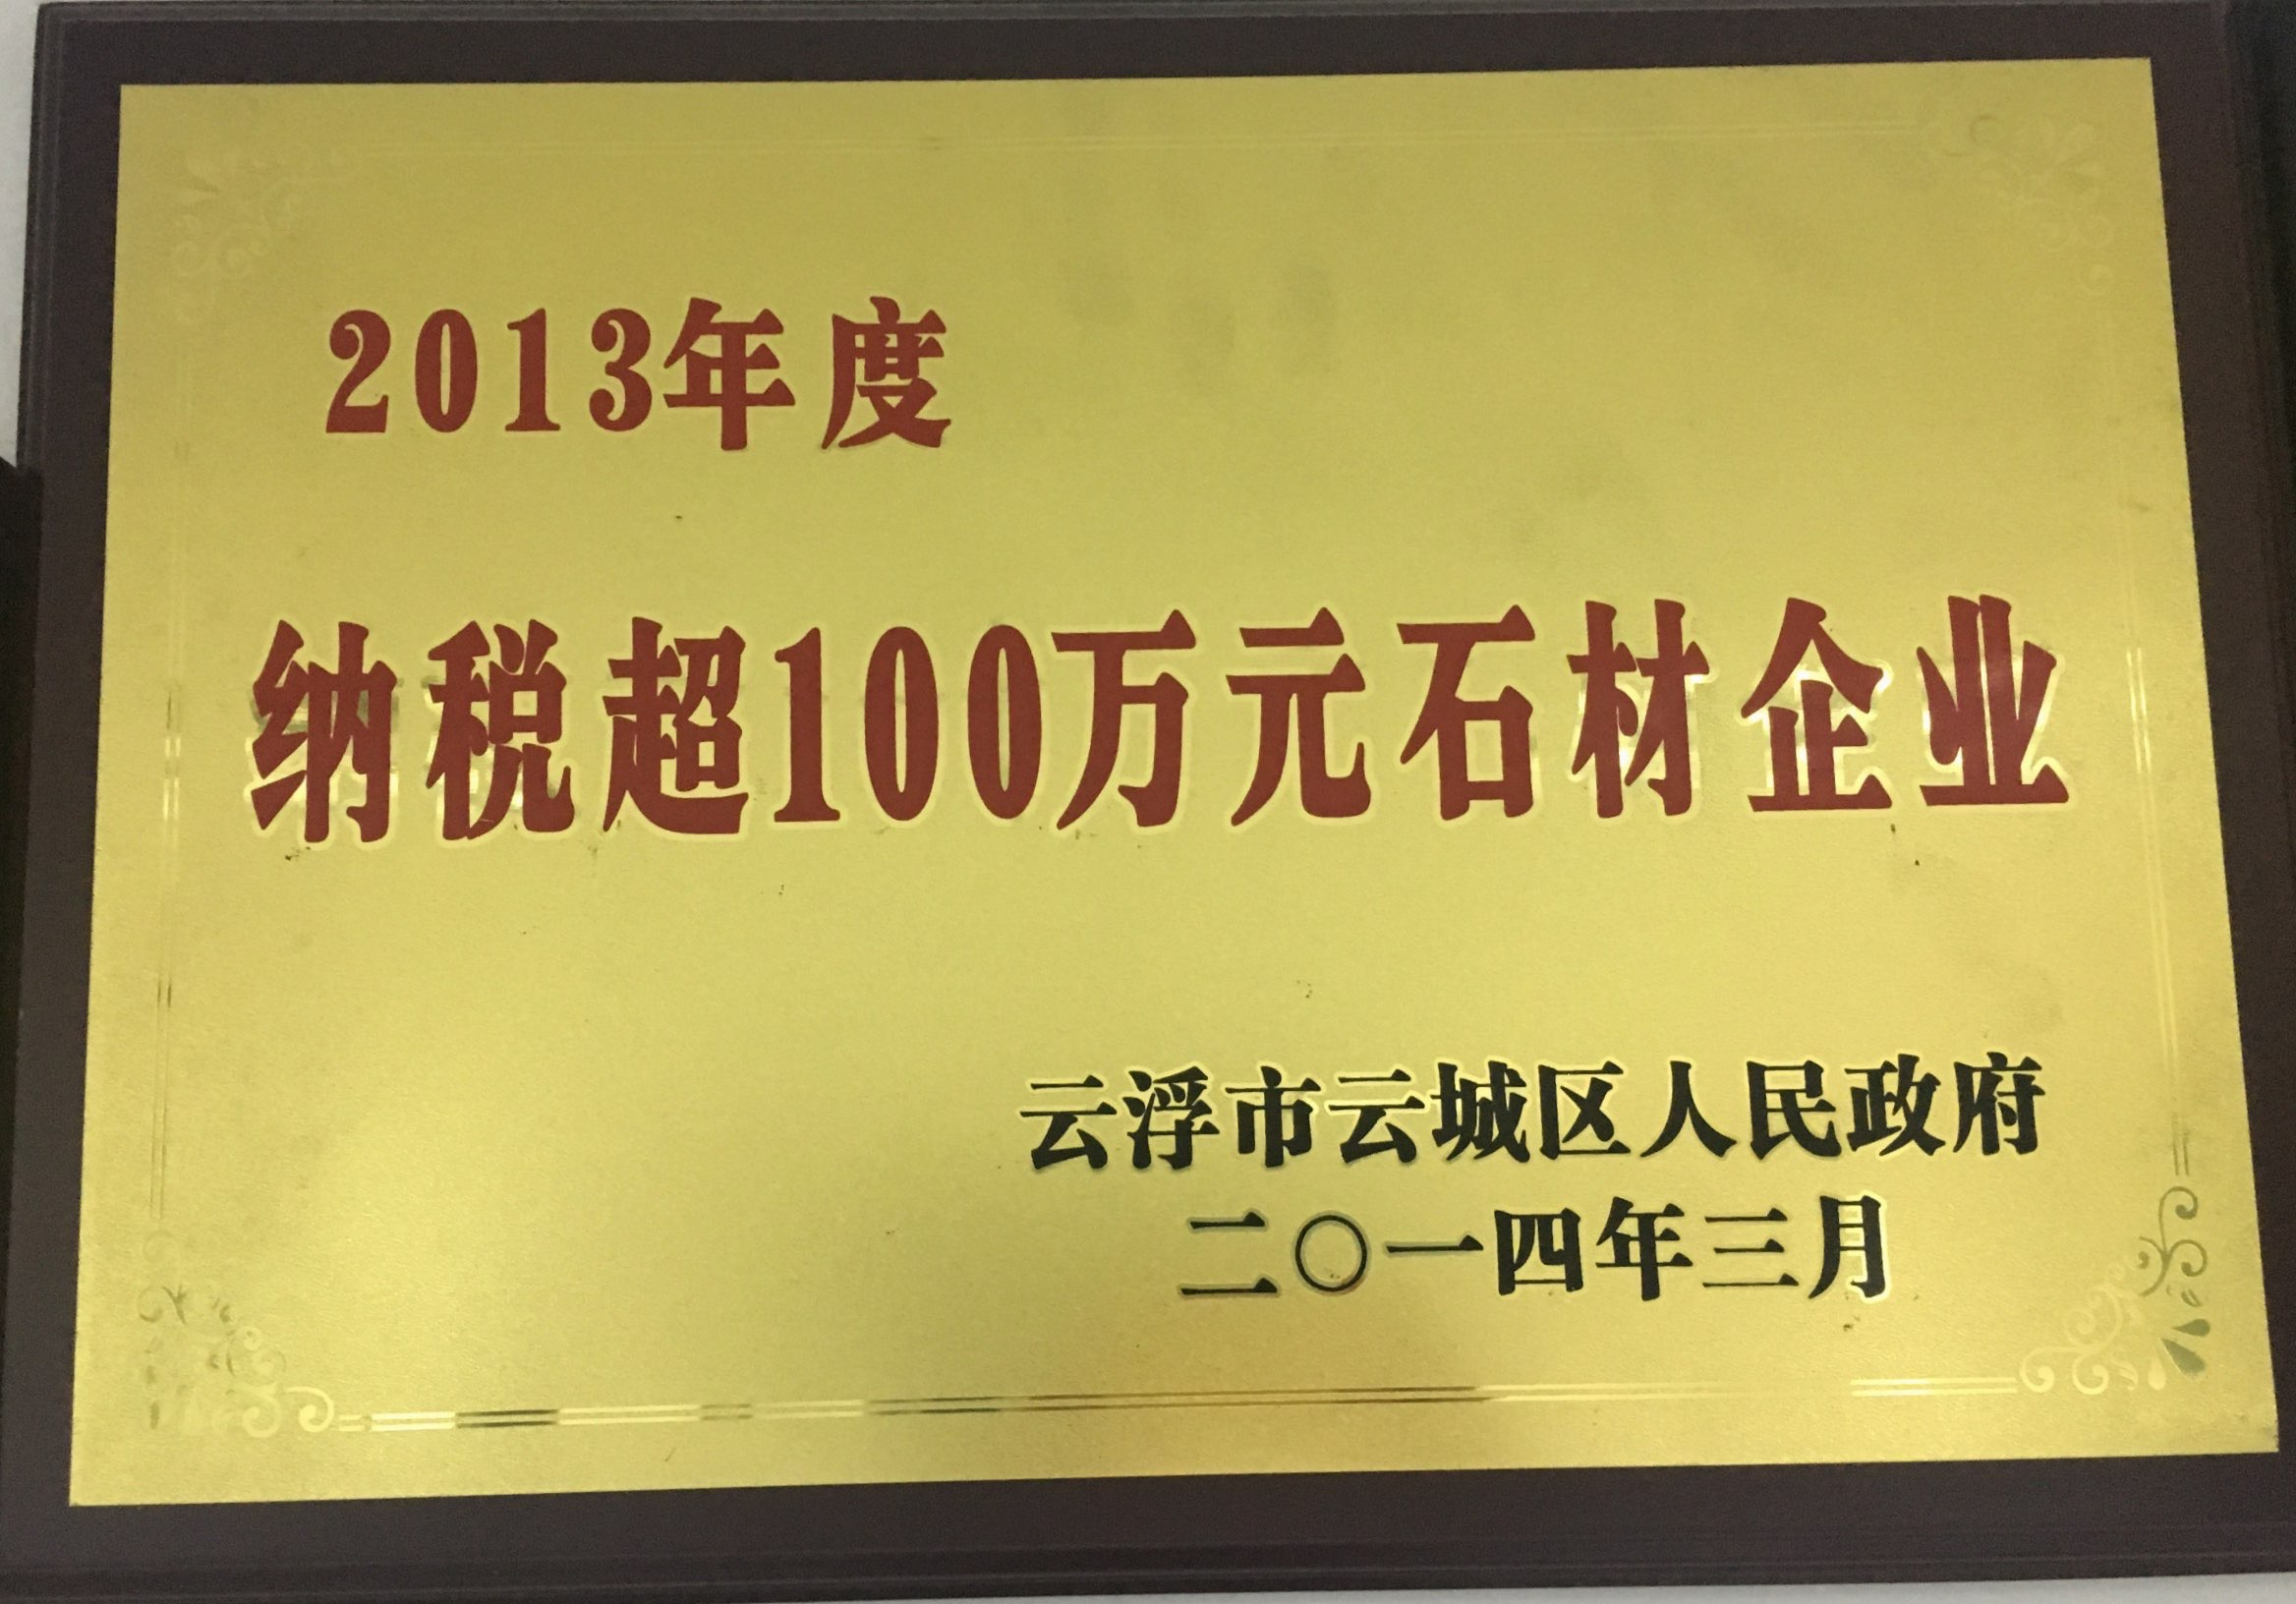 Stone enterprise with tax of over 1 million yuan in 2013